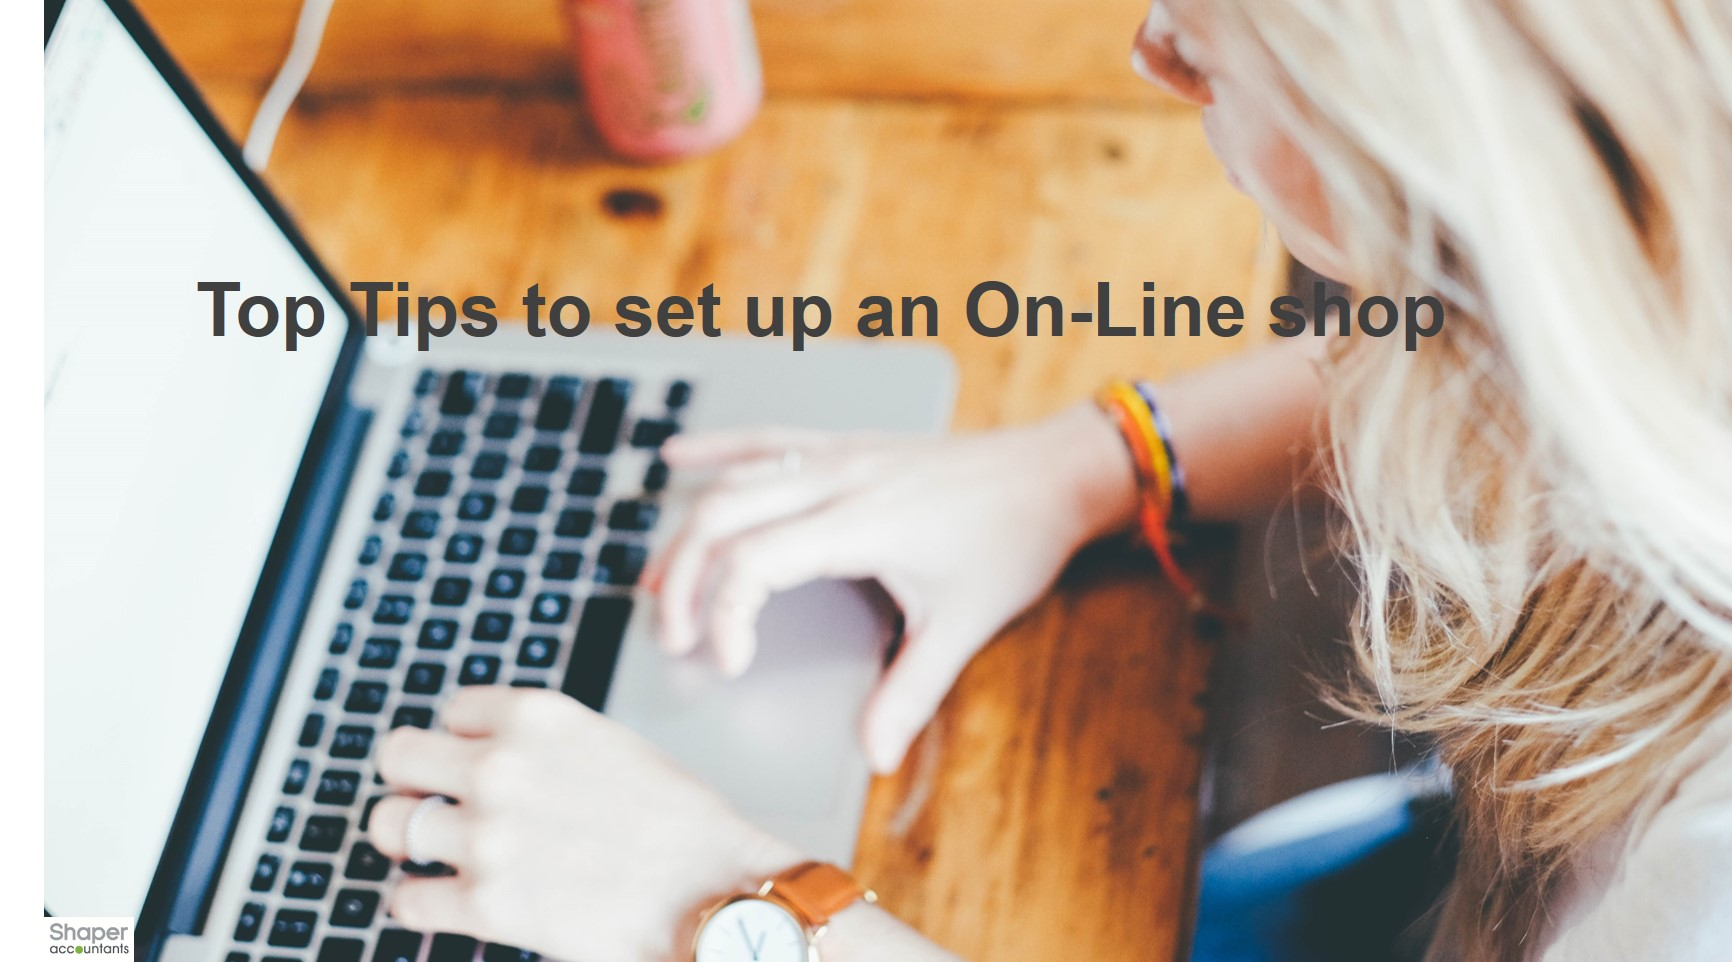 How to set up an on-line shop